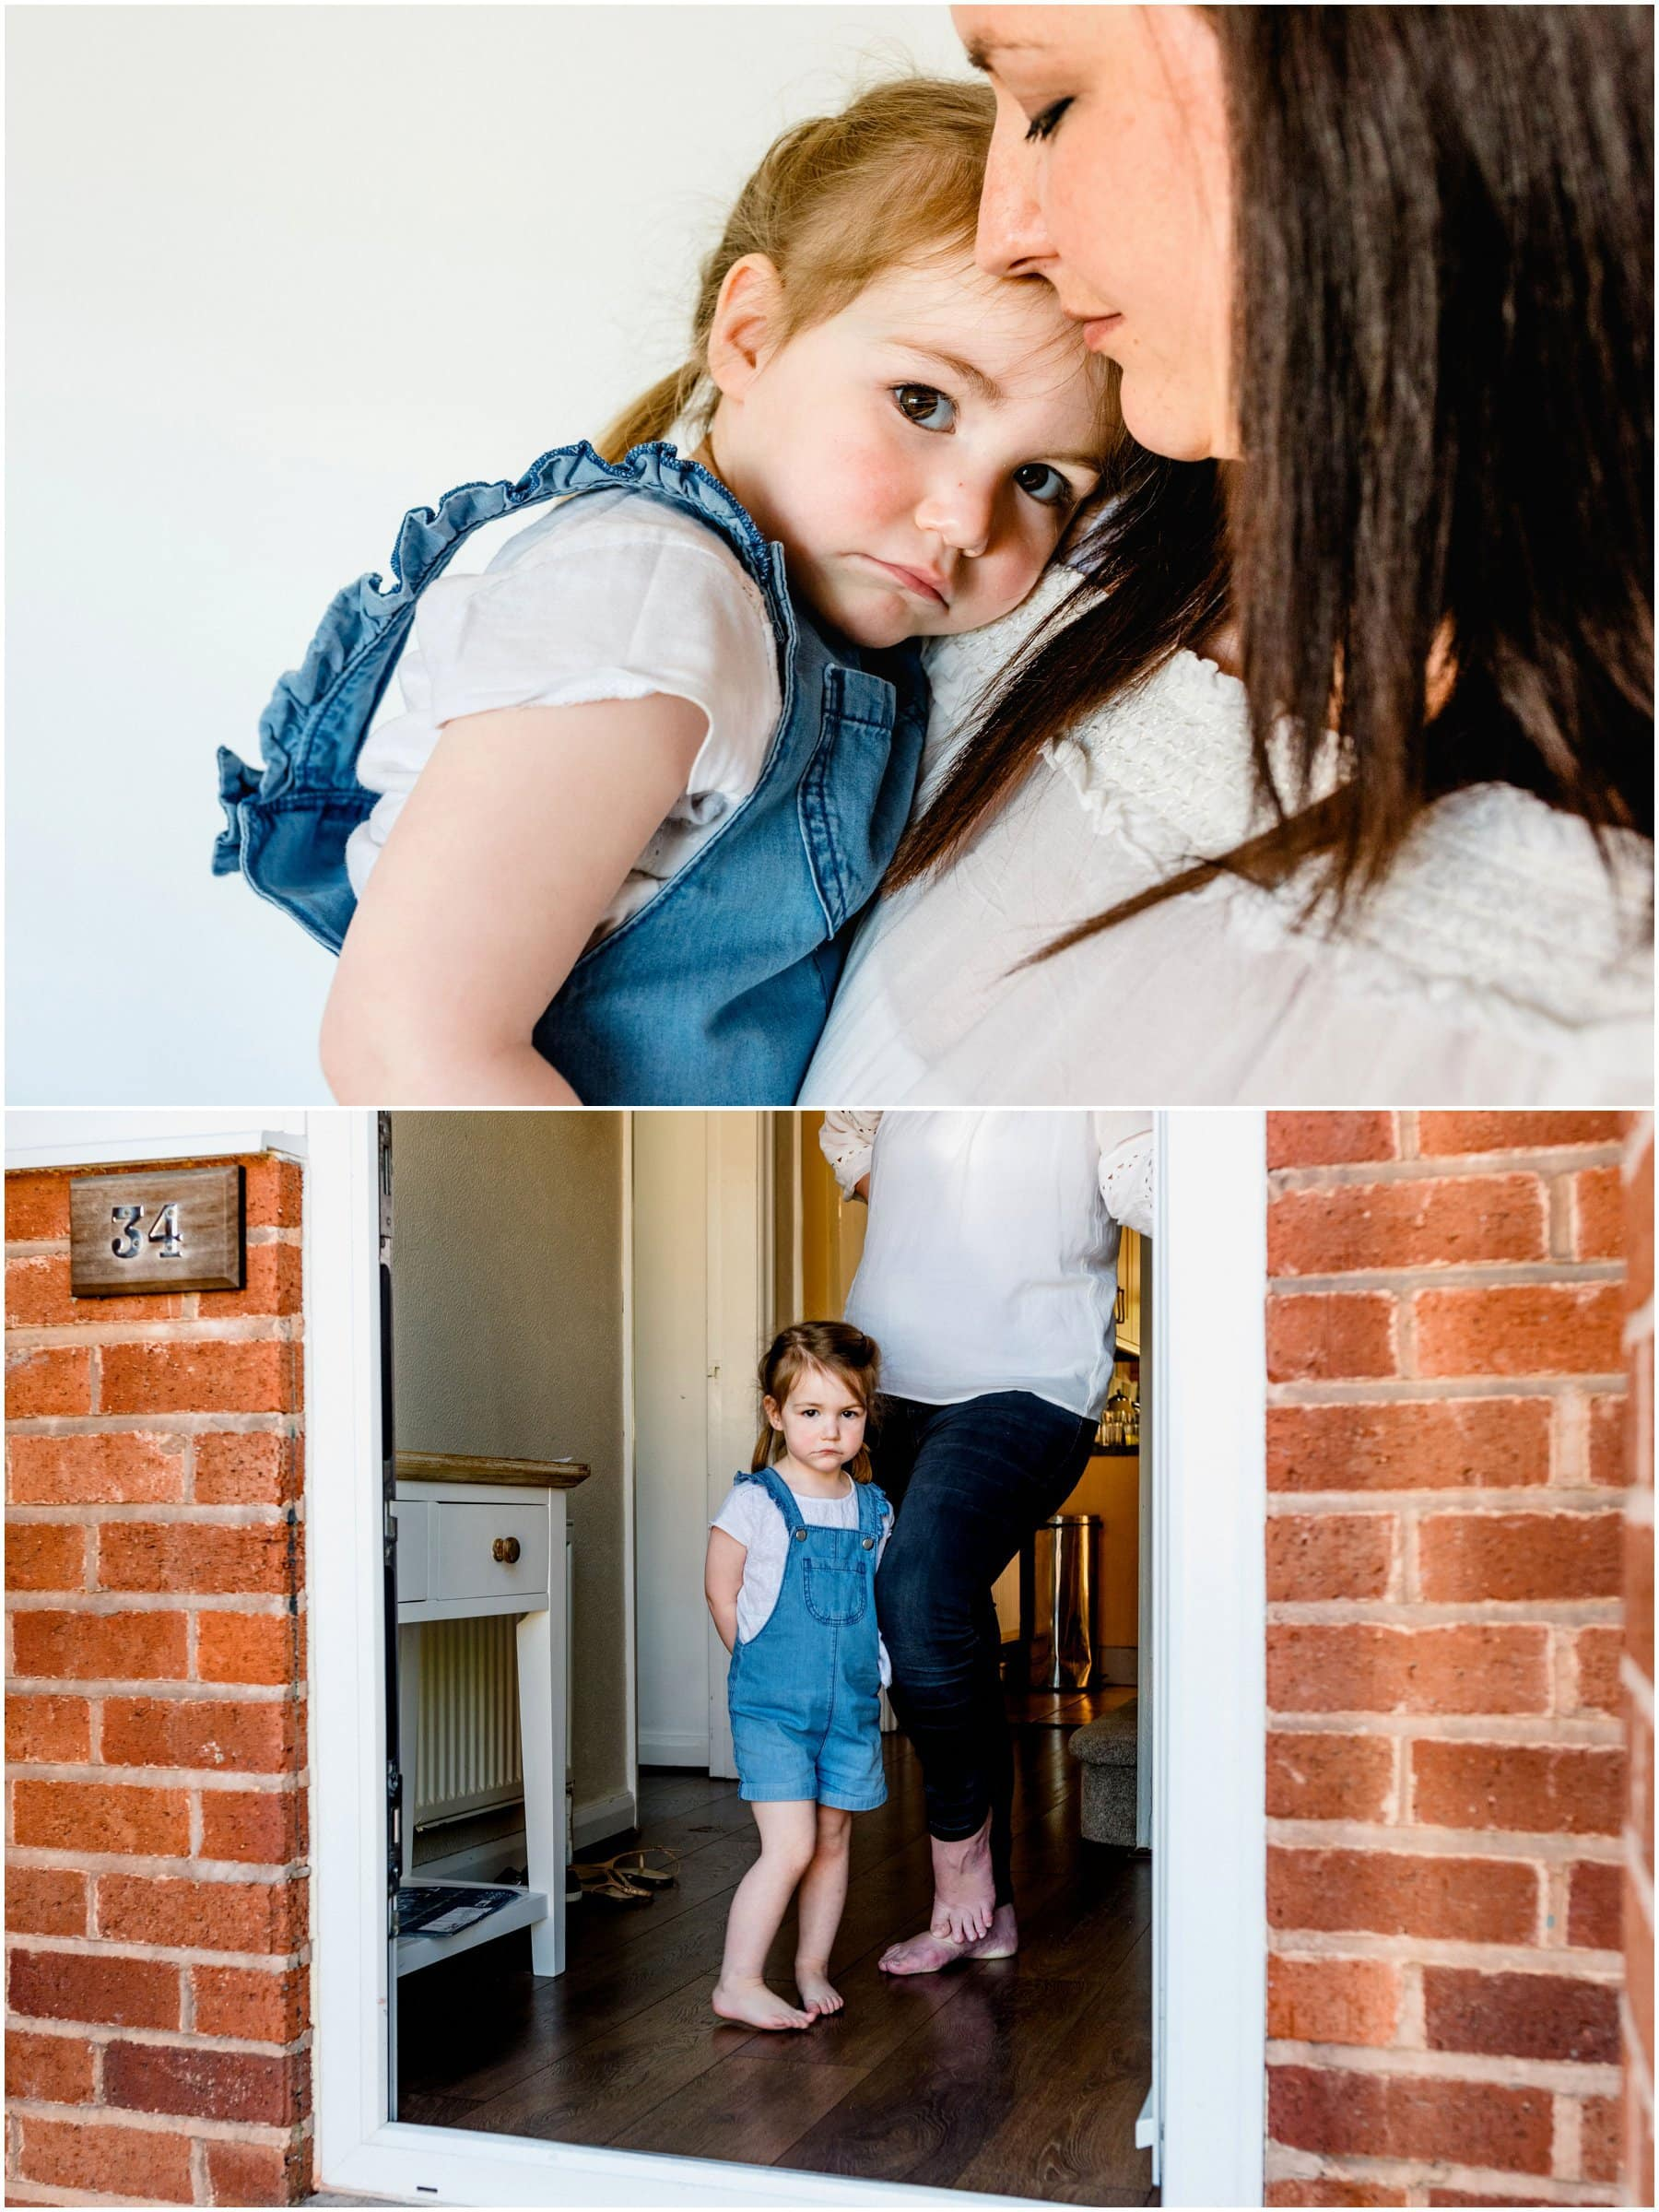 Relaxed family photography at home with 2 children and a newborn